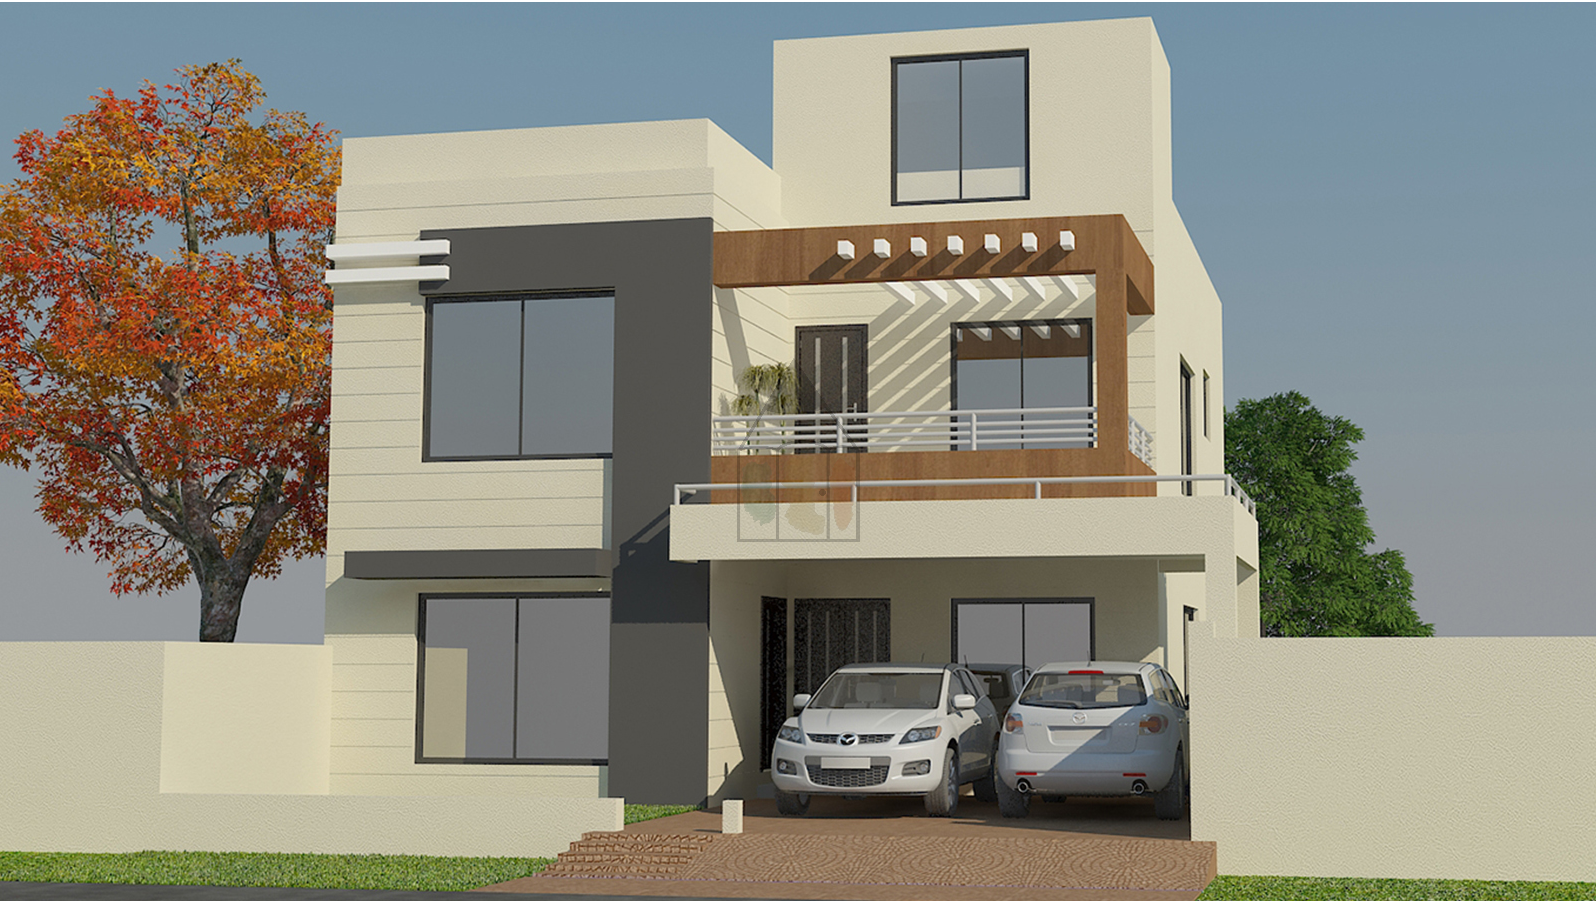 Pakistani House Designs 10 Marla This Is A Pakistani House Design Of 10 Marla 35 Ft Front And Bungalow House Design House Layout Plans Duplex House Design